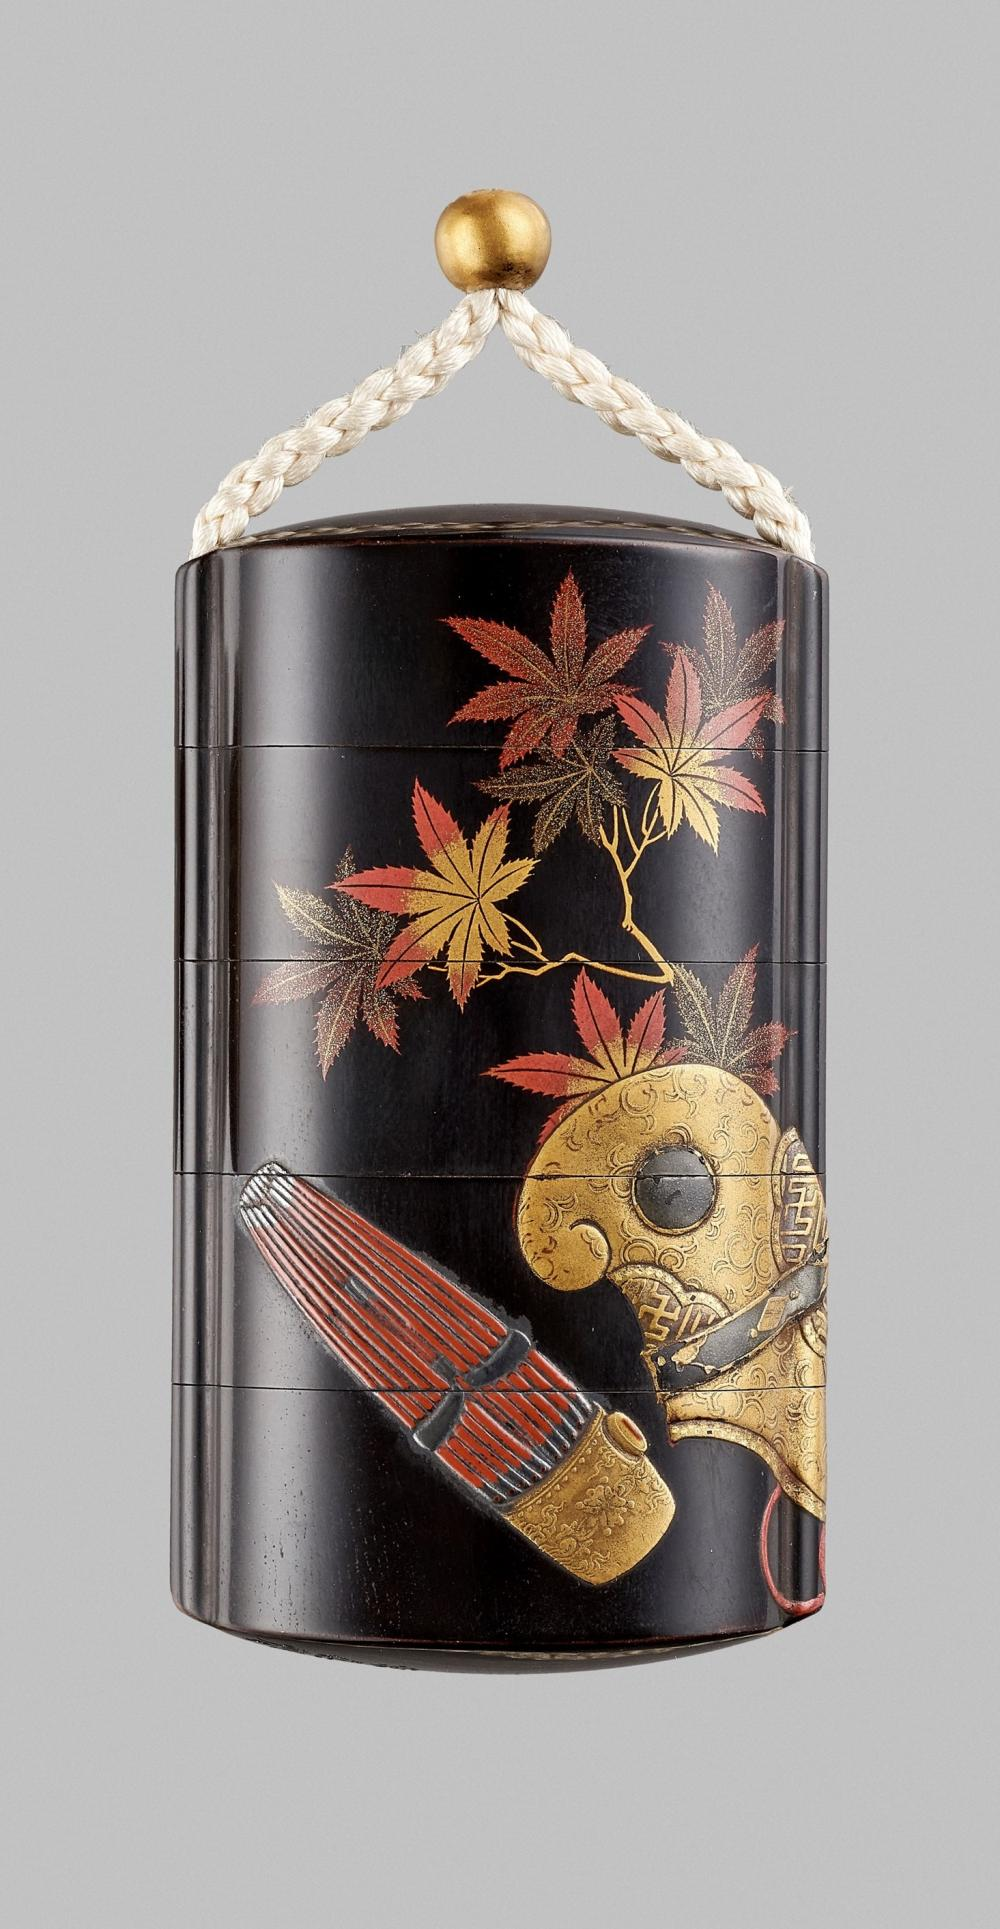 JOKASAI: A BLACK LACQUER FOUR-CASE INRO WITH MAPLE LEAVES AND BUGAKU ACCOUTREMENTS